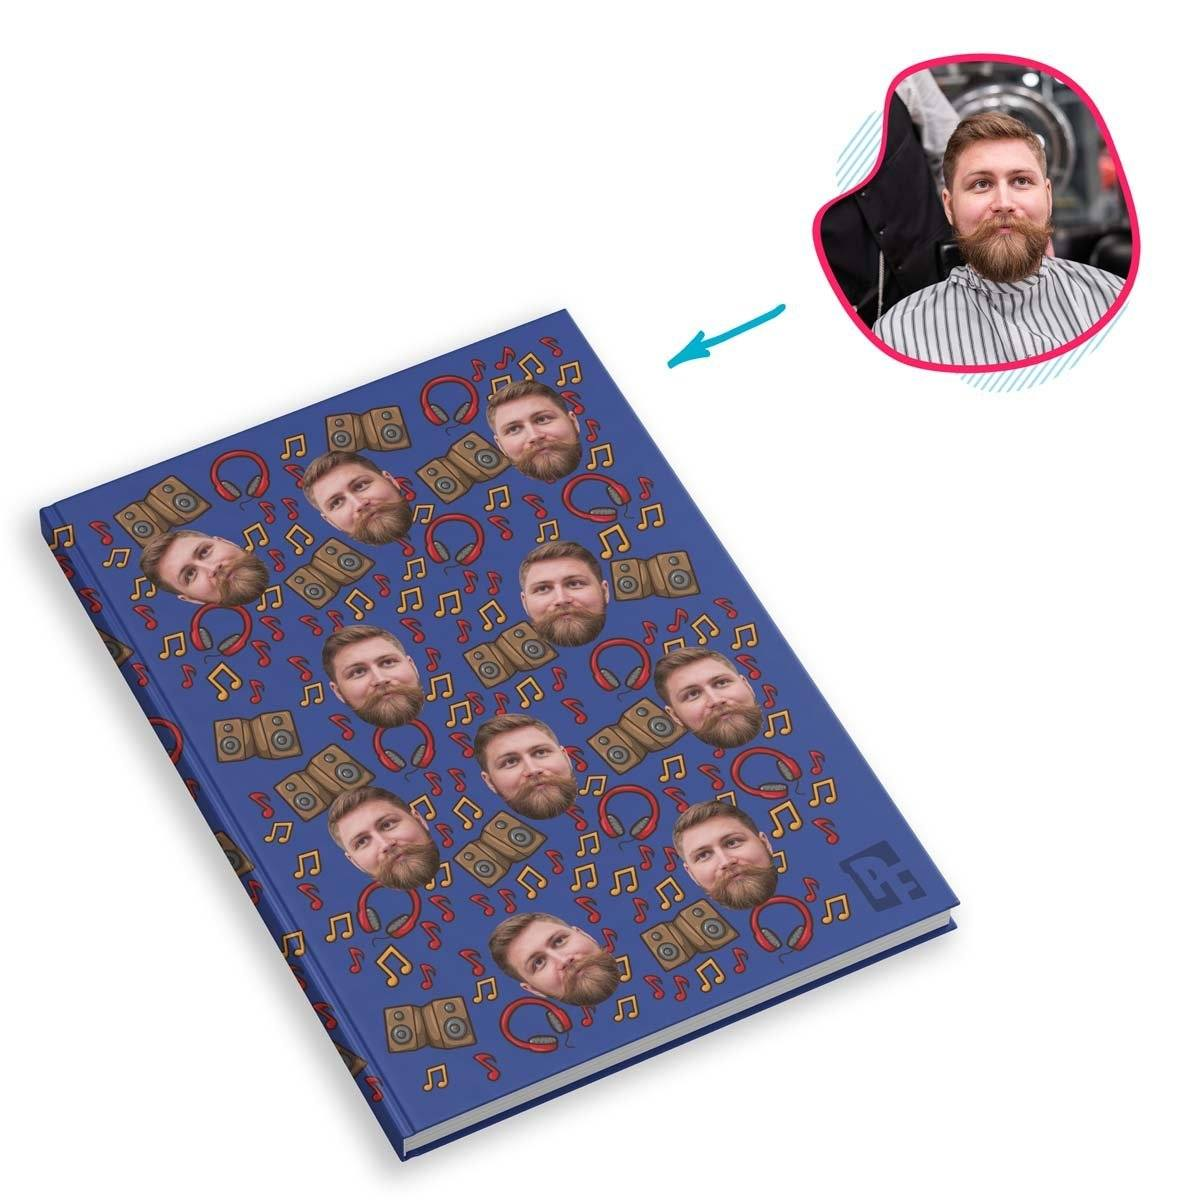 darkblue Music Notebook personalized with photo of face printed on them